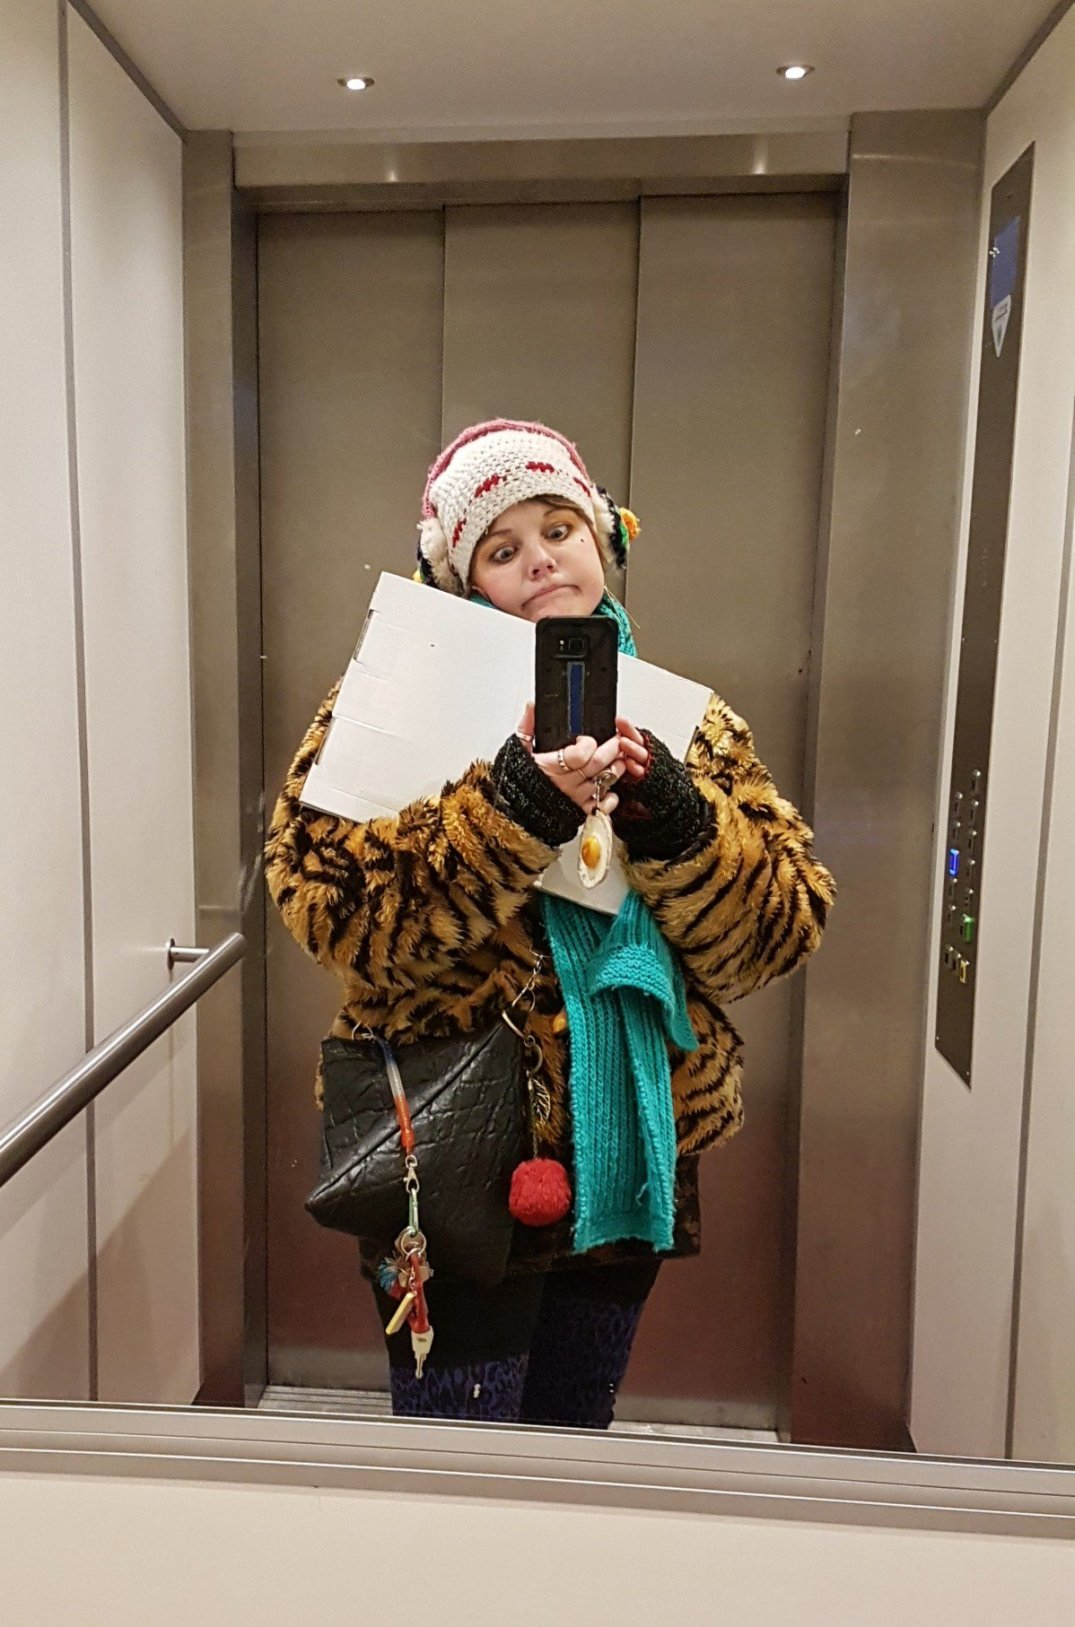 Leonie ruissen in de lift